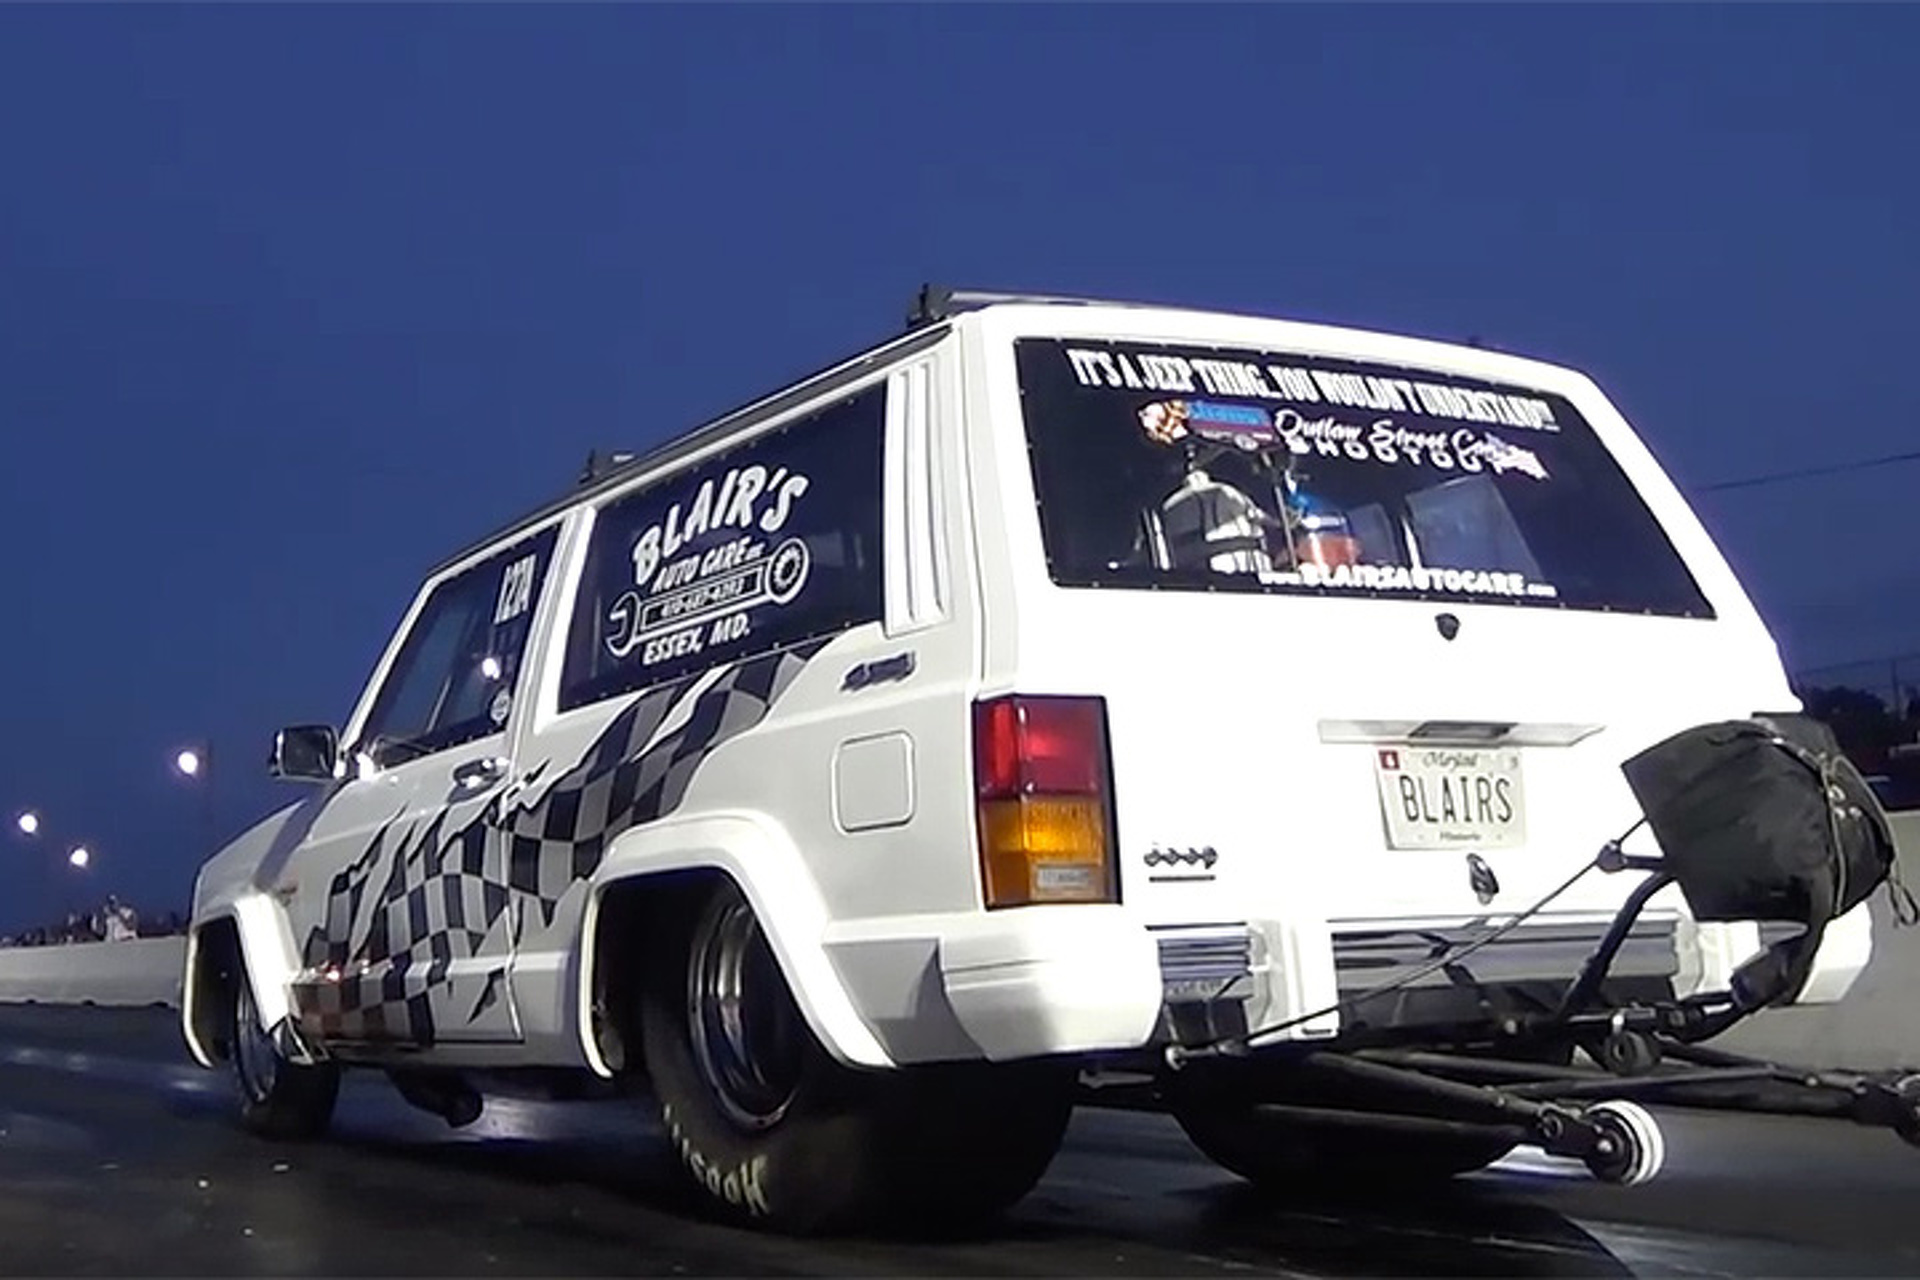 Watch World's Fastest Jeep Cherokee Crash During a Drag Race